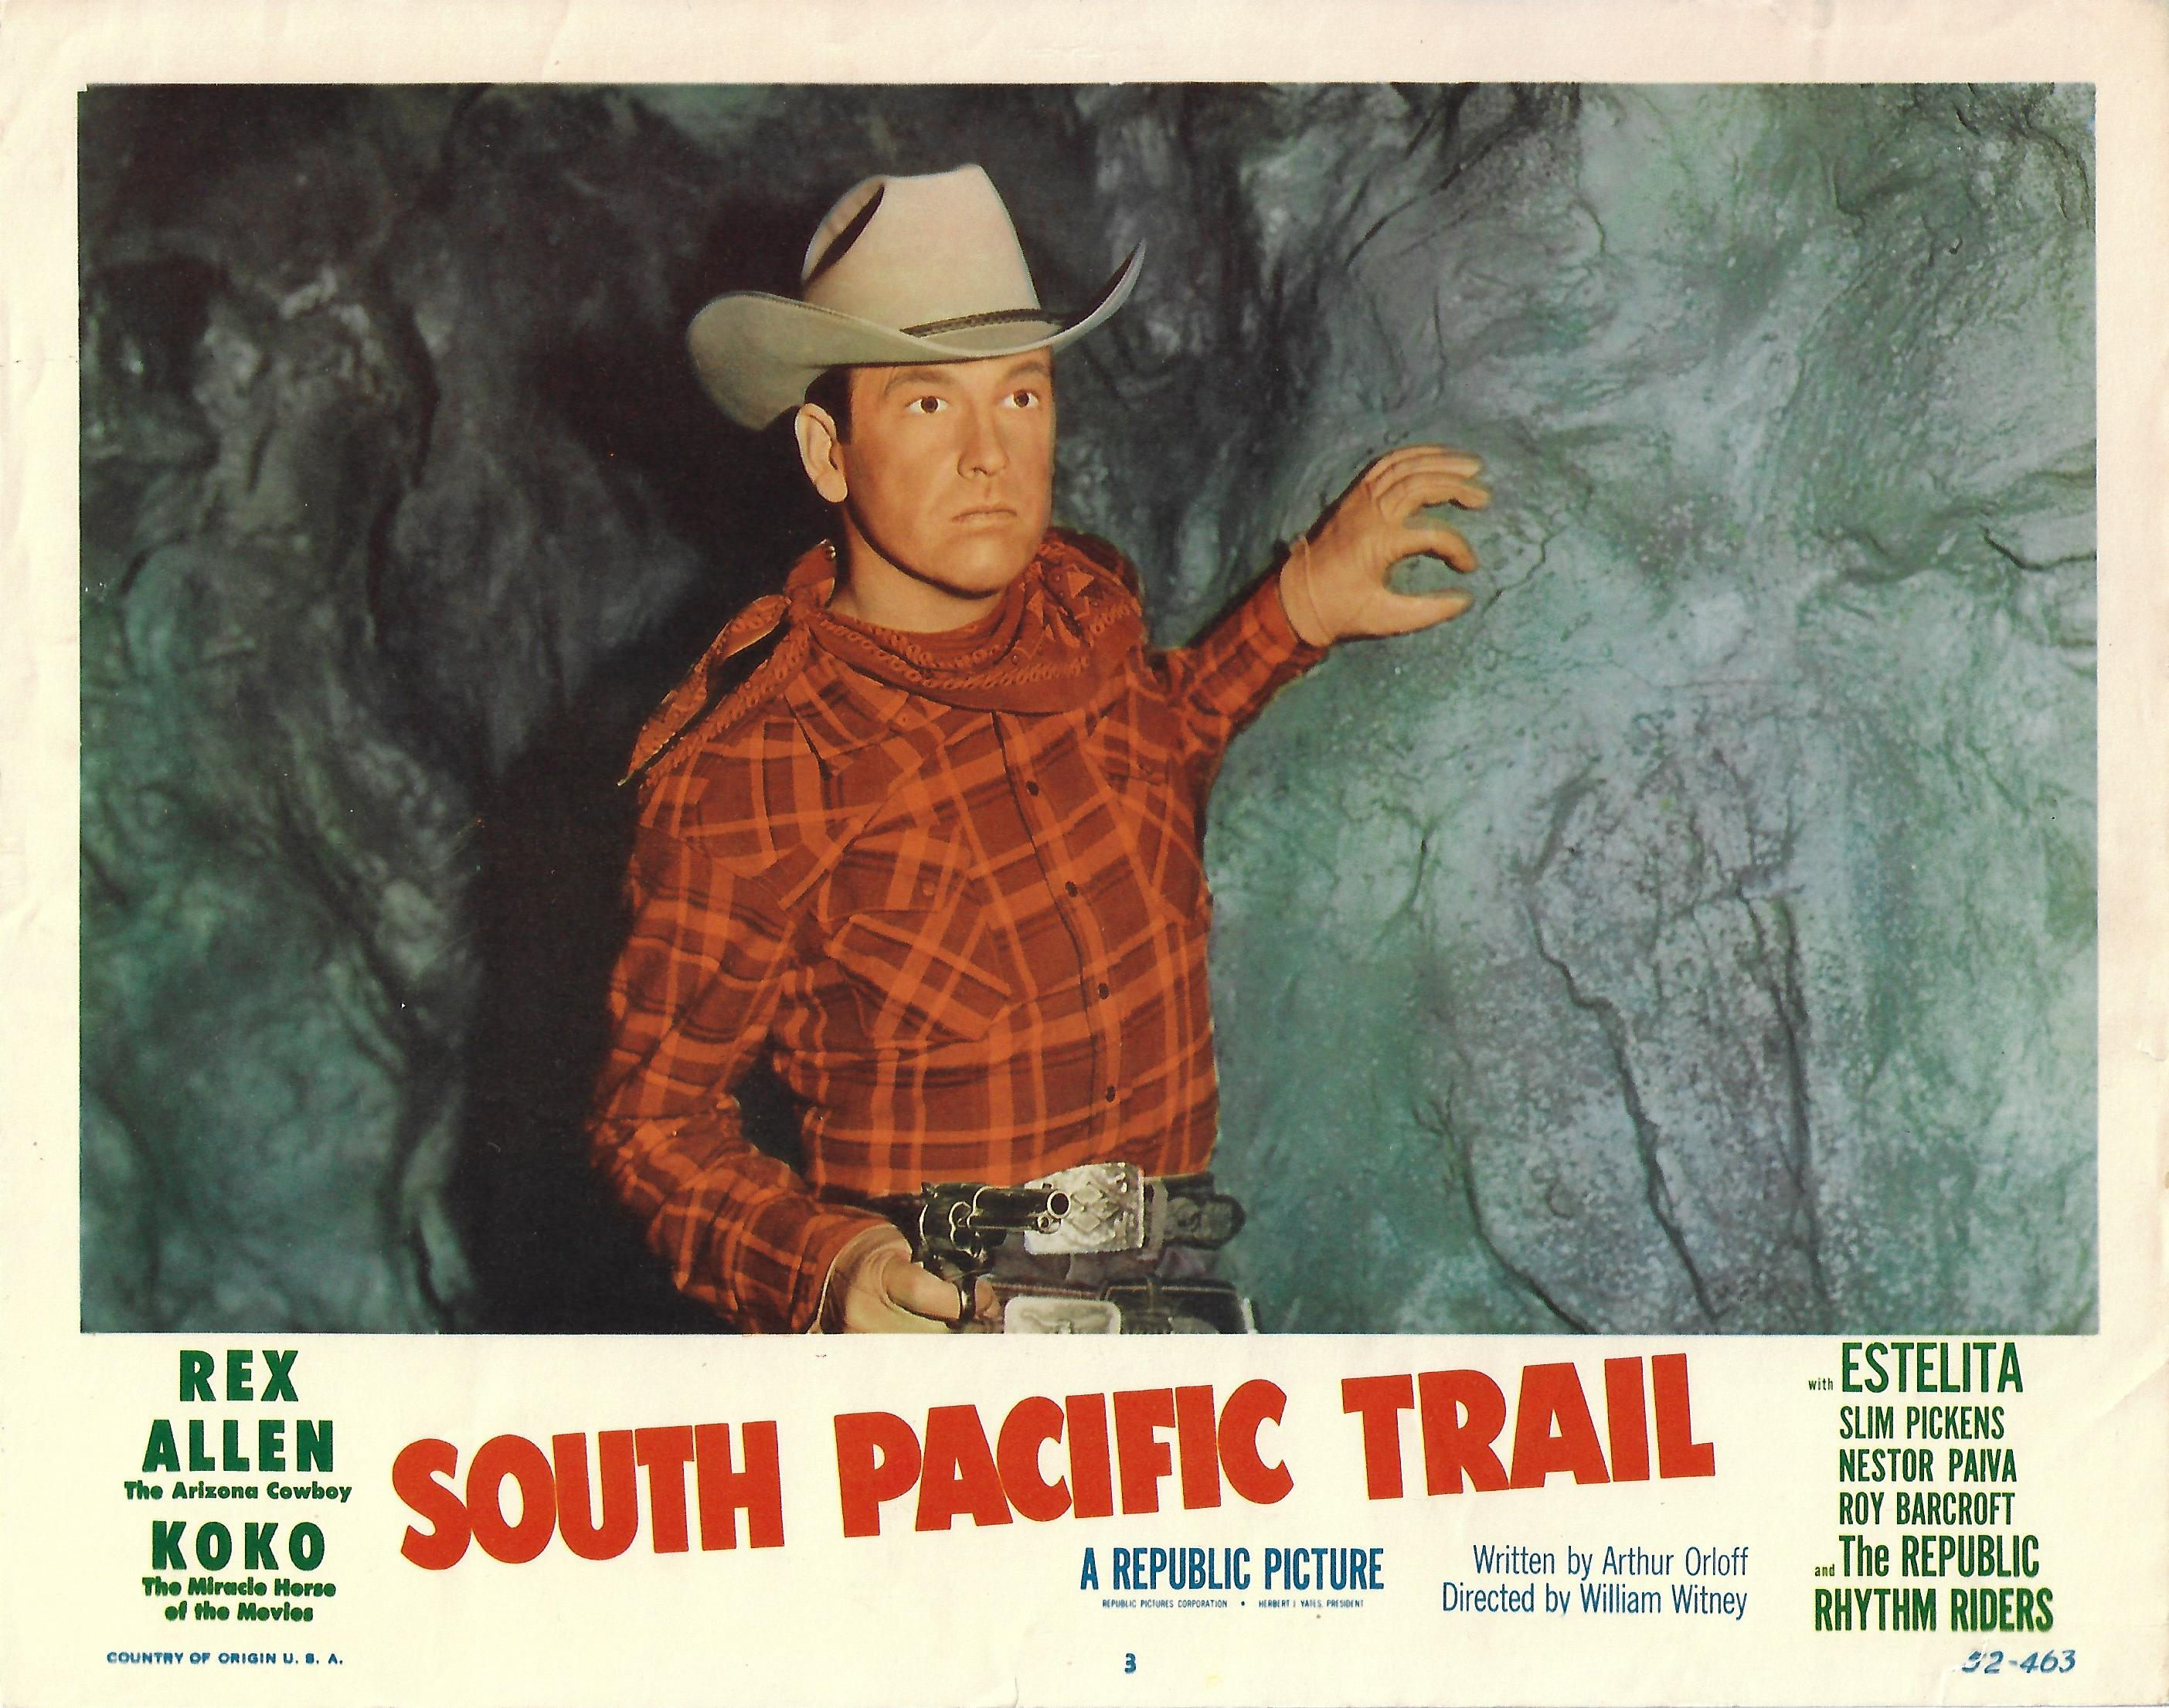 South Pacific Trail, Original Lobby Card , 1952, 11x14